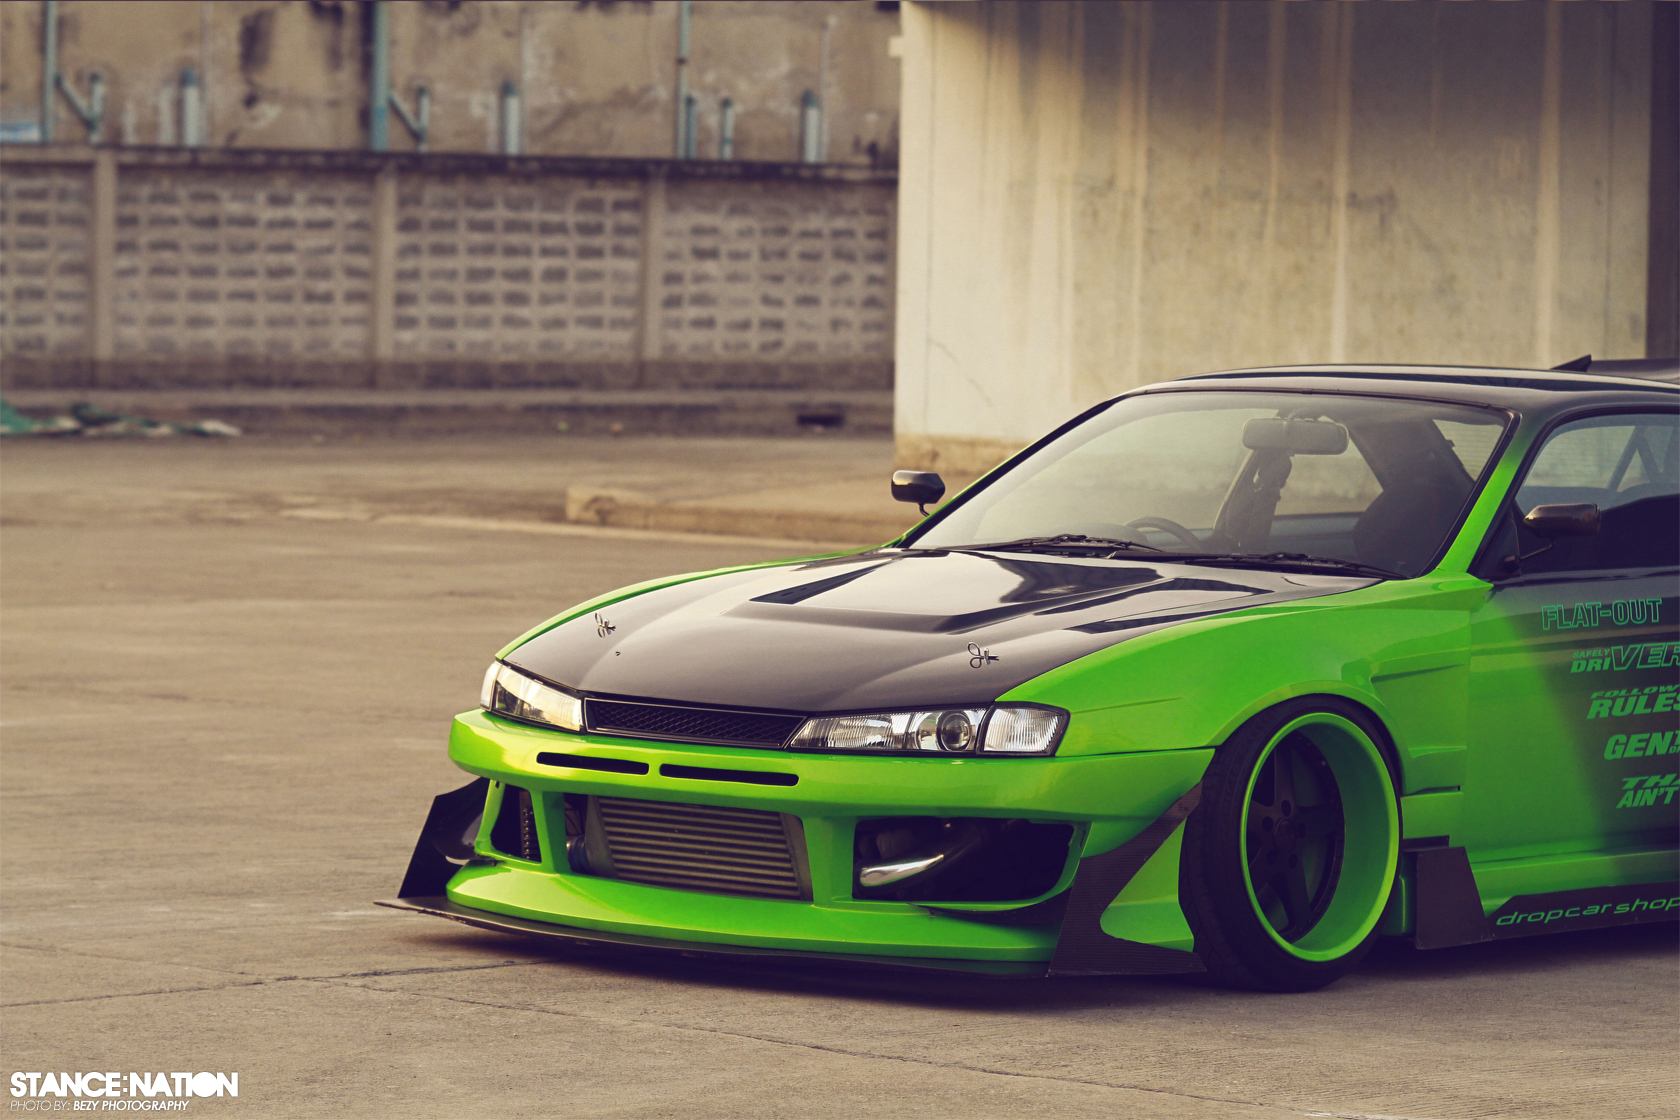 Fast And Furious Hd Wallpapers 1080p One Wild S14 Stancenation Form Gt Function